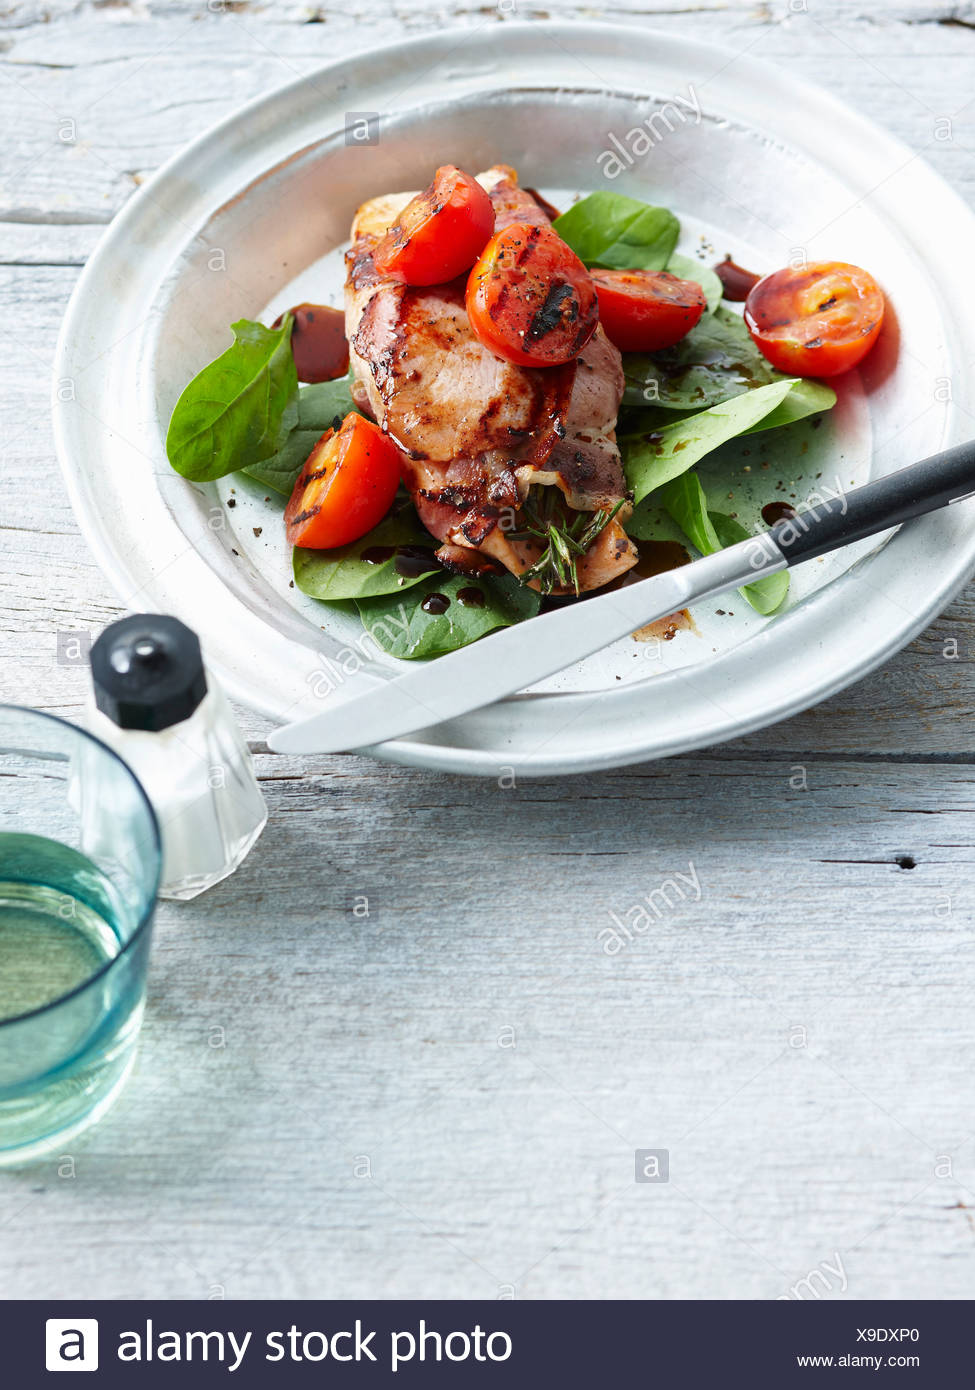 Plate of chicken with grilled tomatoes - Stock Image